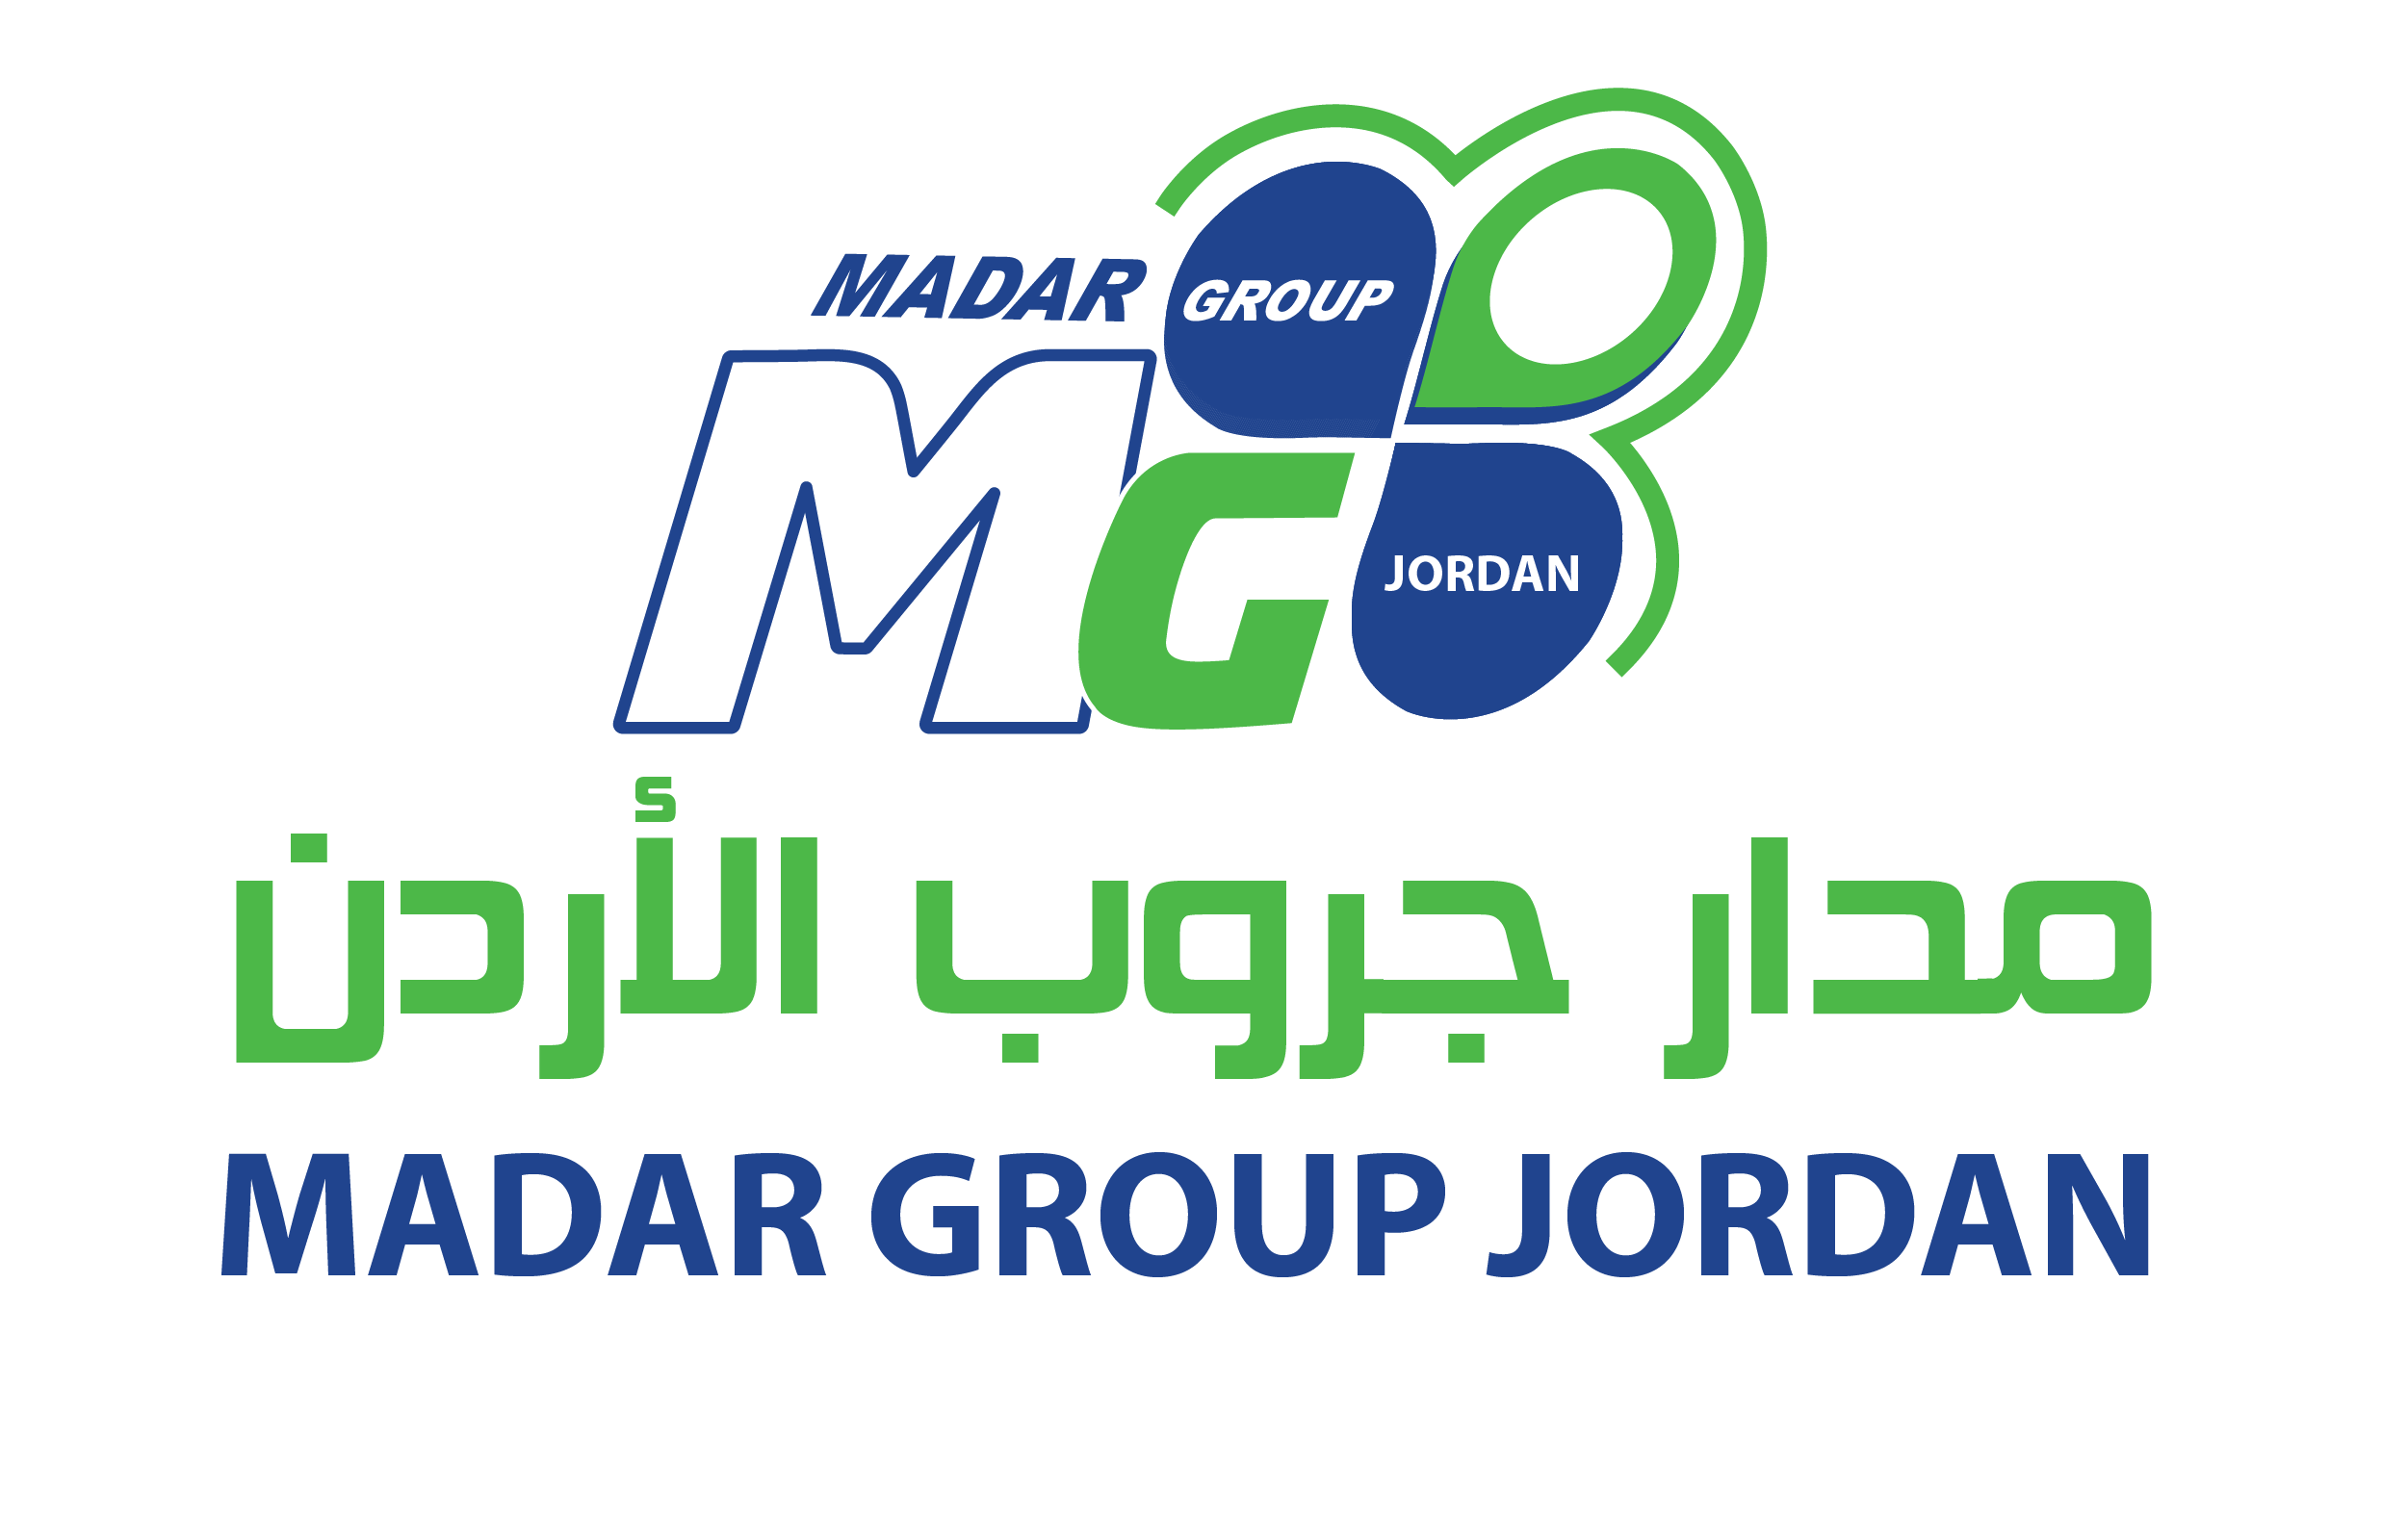 Madar Jordan, founded in 2014 to provide Jordan with our original and high quality products to Jordan's concumers.